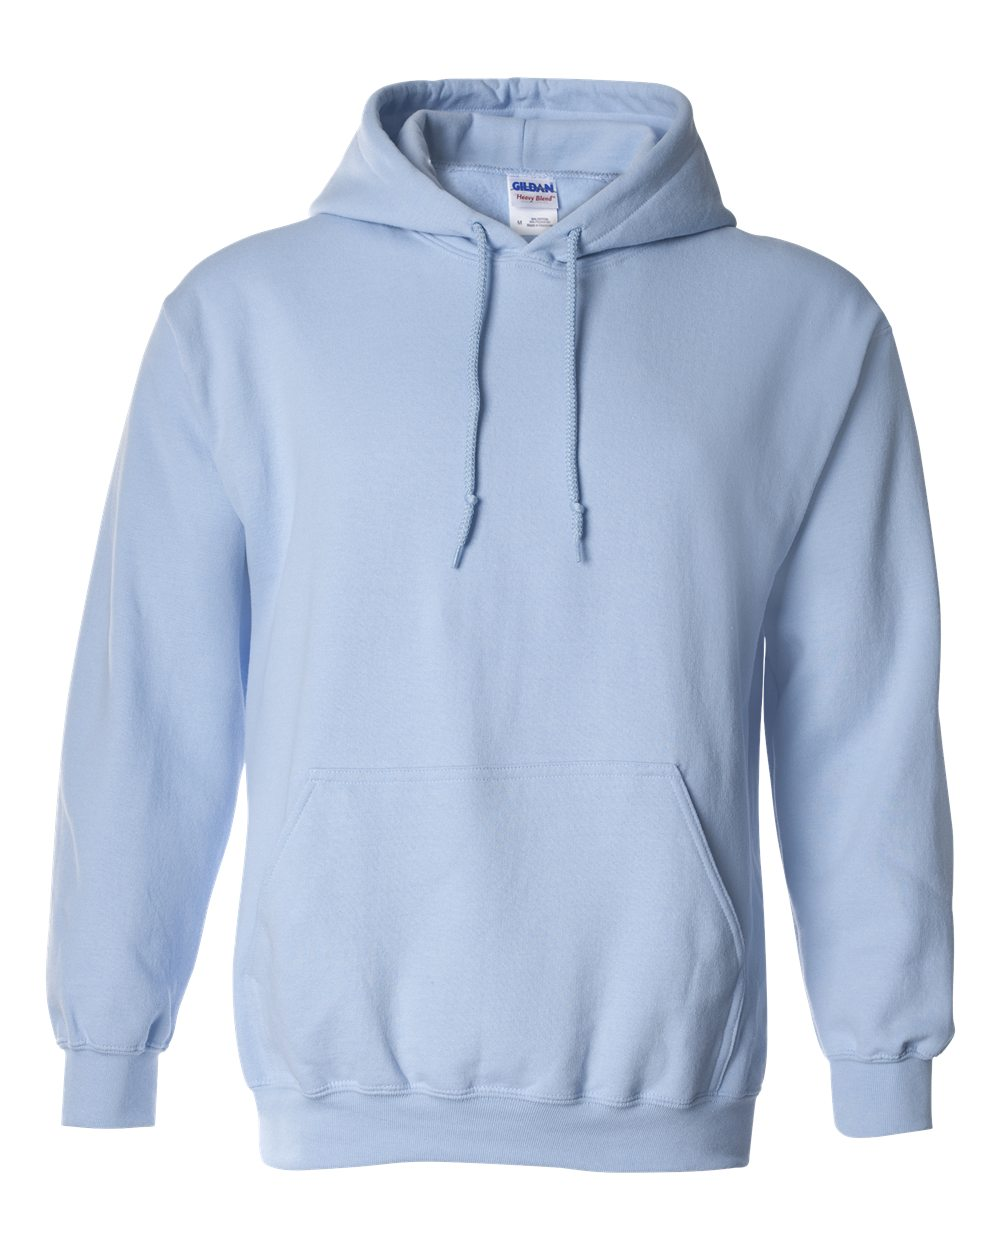 Gildan_18500_Light_Blue_Front_High.jpg